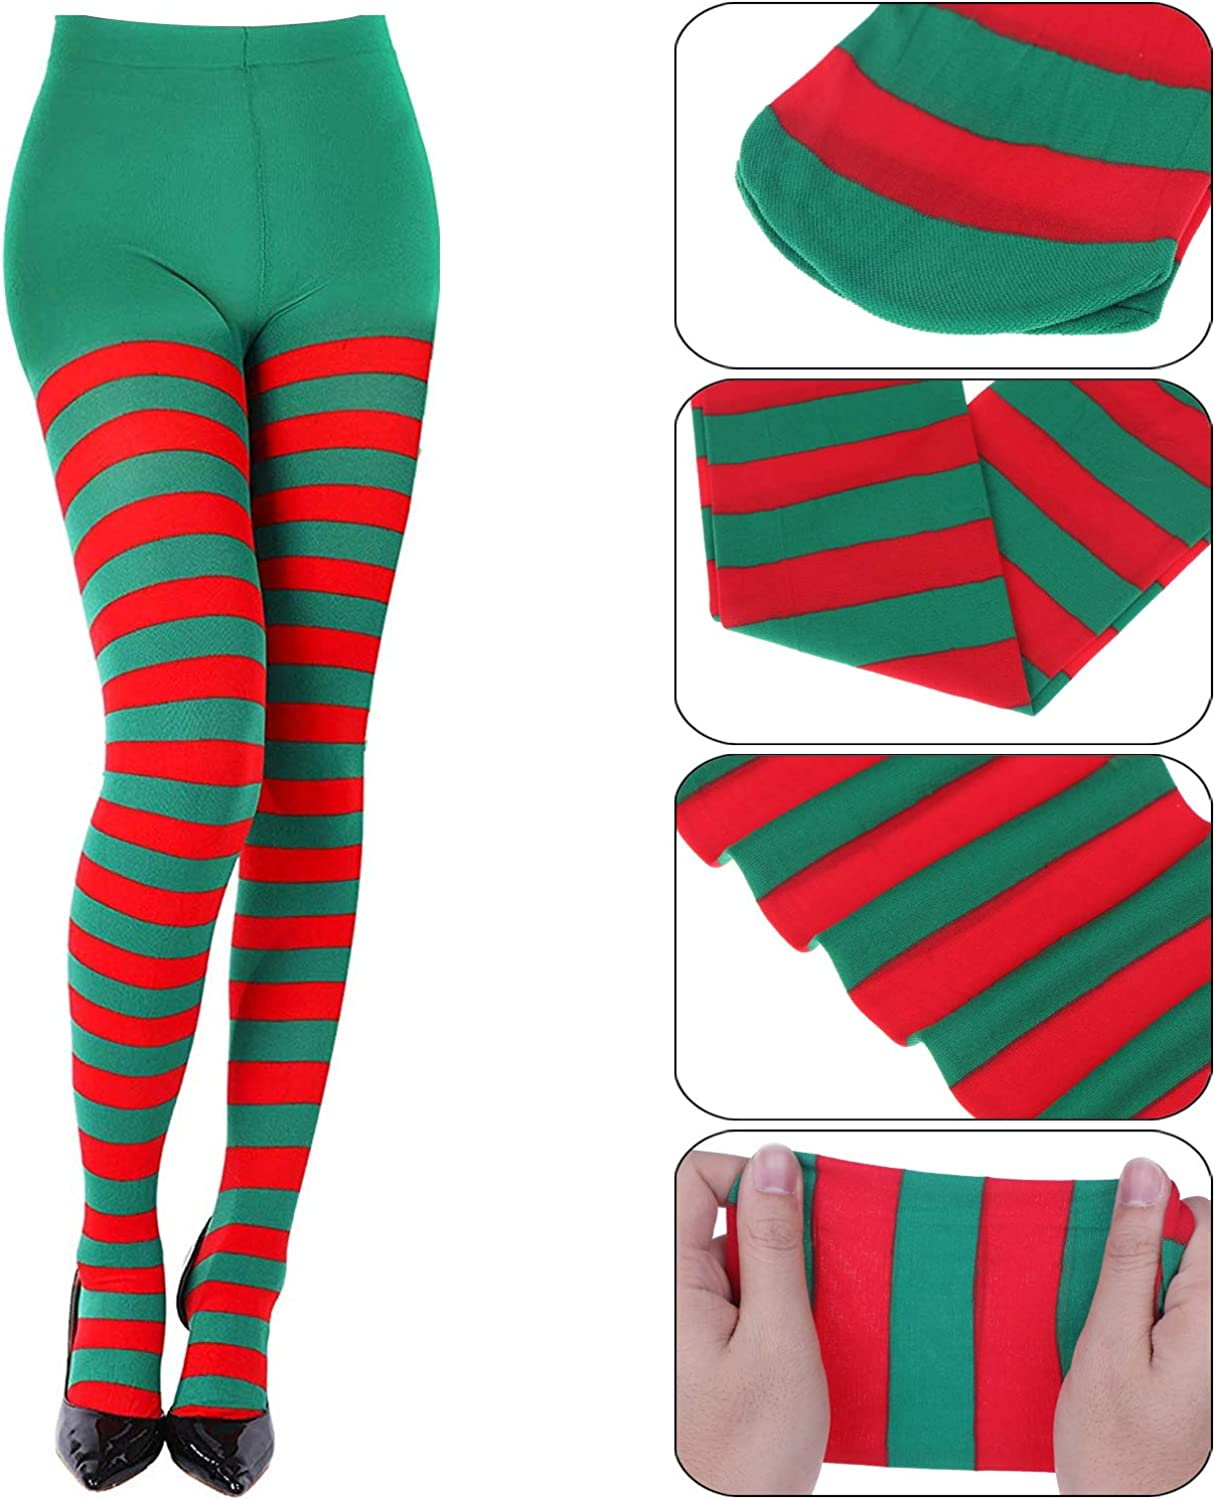 LOCOLO 3 Special Holiday Striped Socks Thigh High Stockings Pantyhose for Themed Party